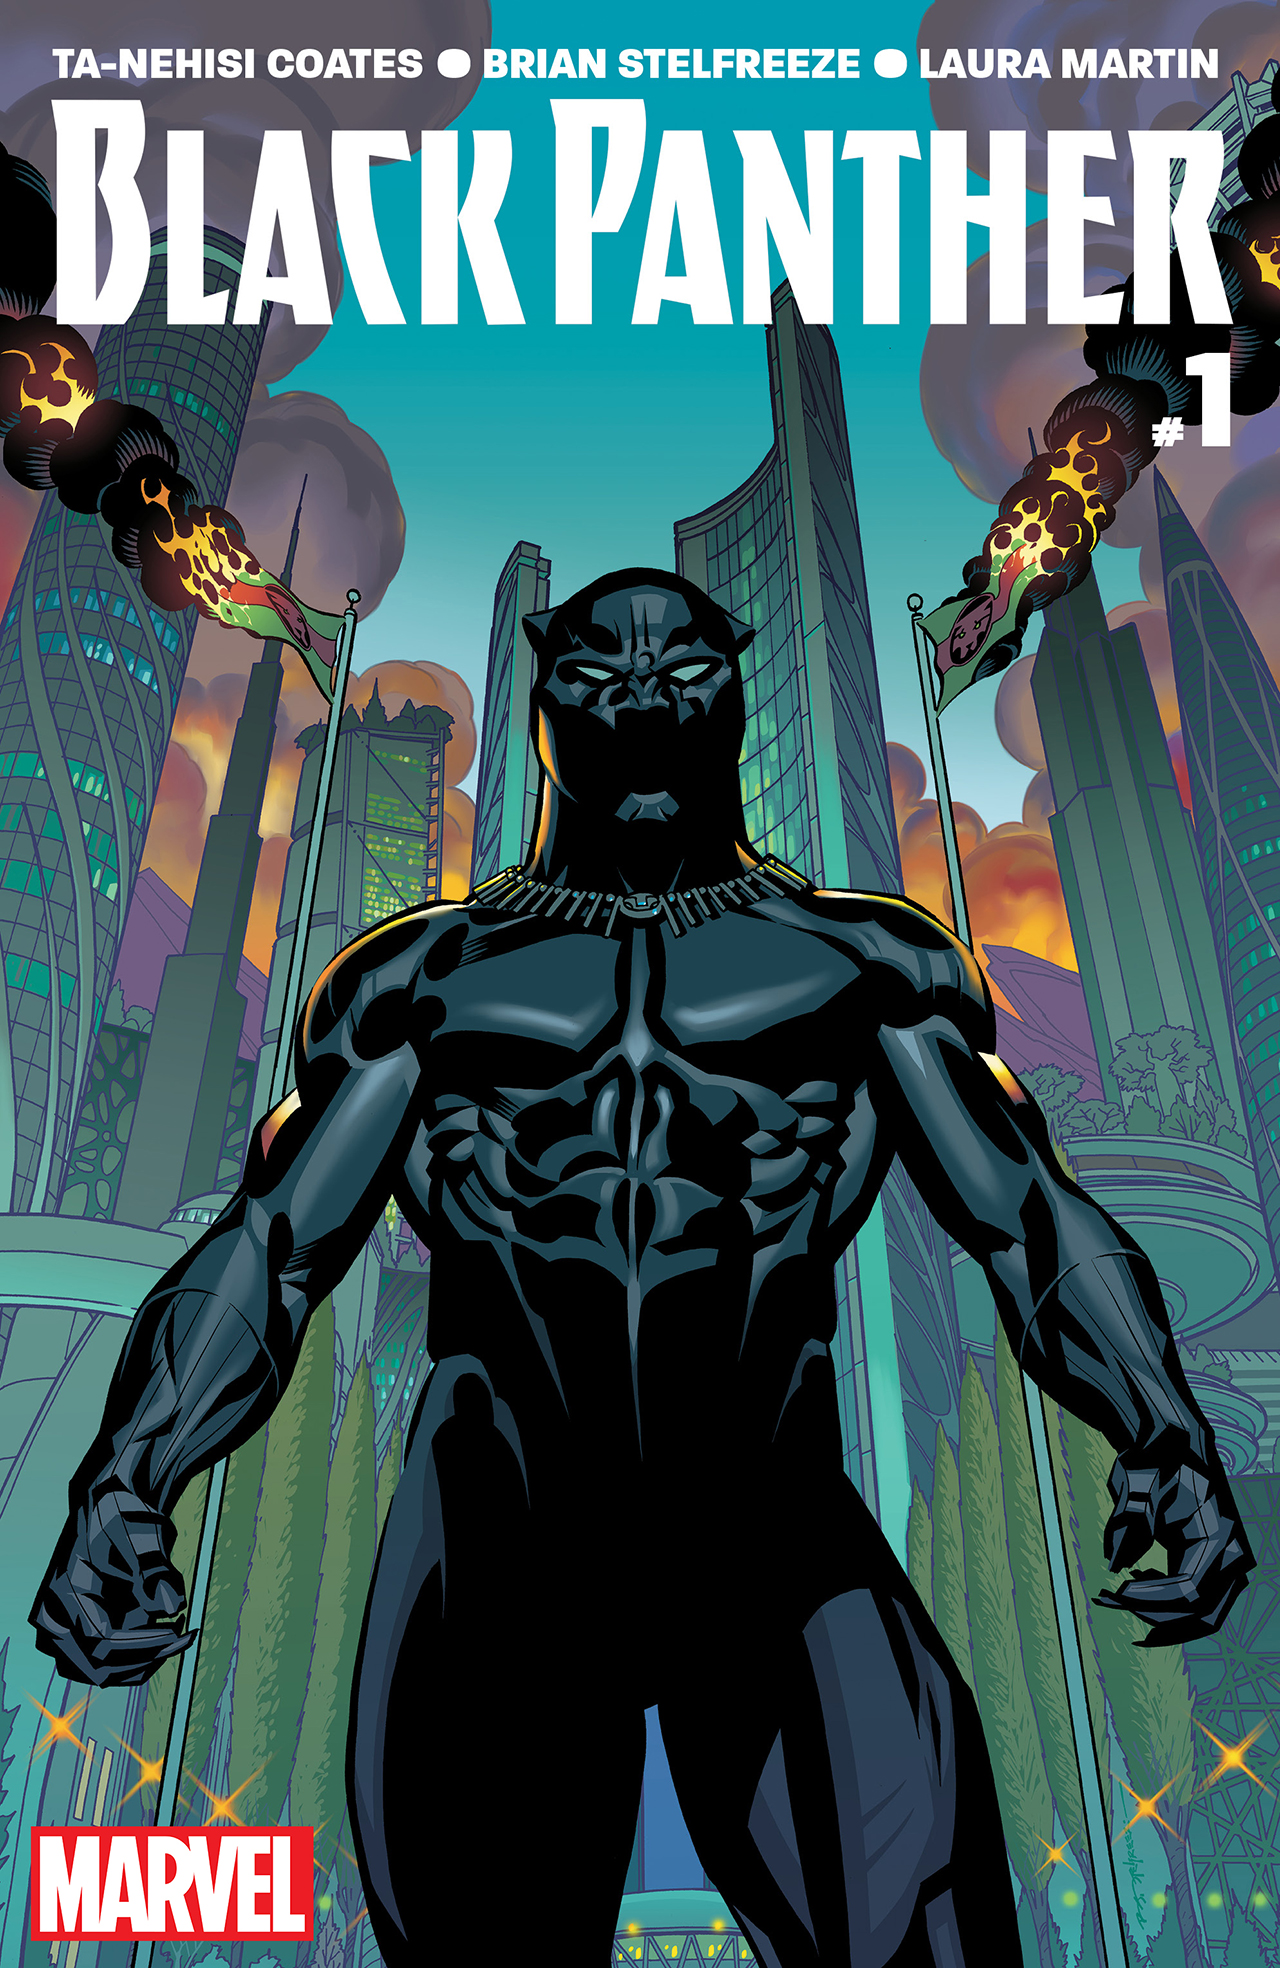 The cover of 'Black Panther #1' (all images courtesy Marvel unless otherwise noted)